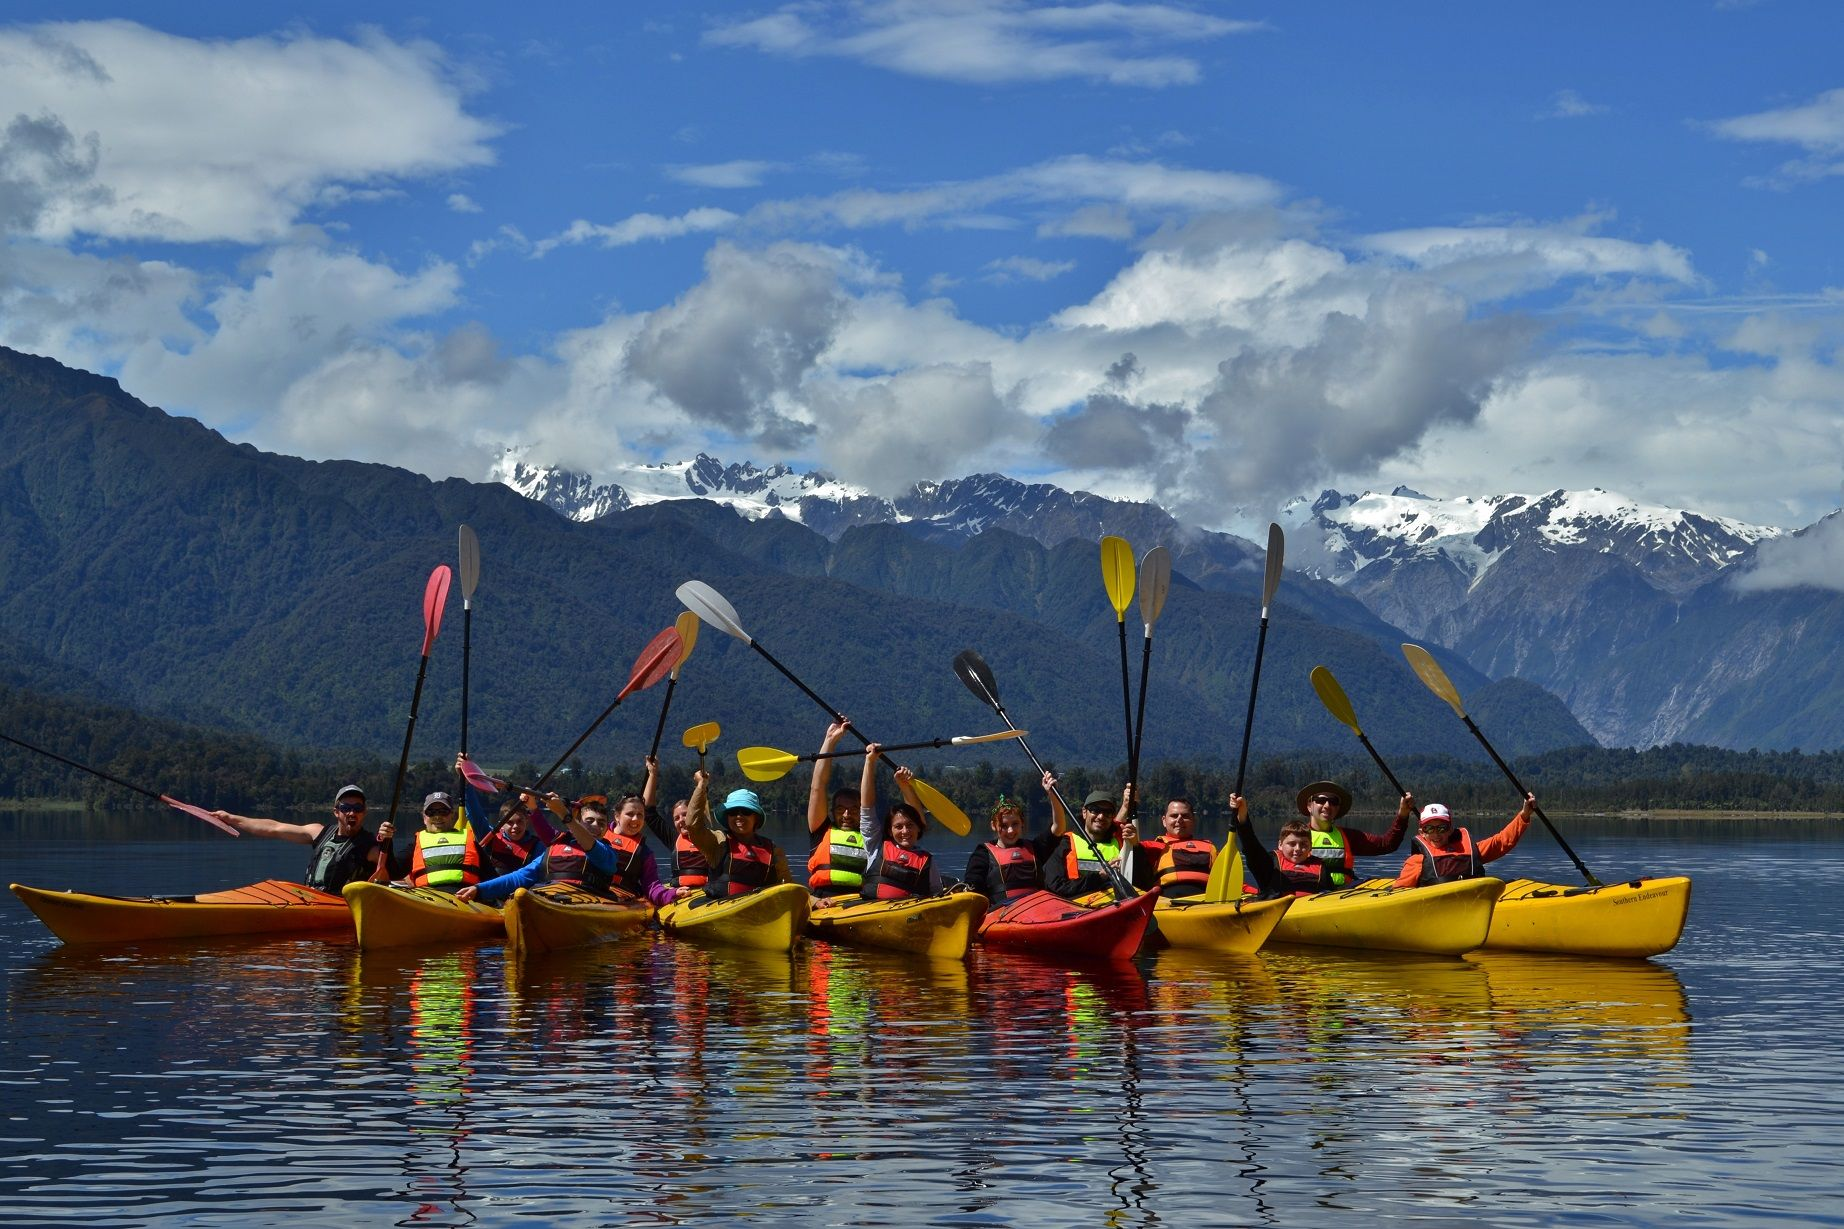 New Zealand Adventure Tours | Small group tours, Adventure ...